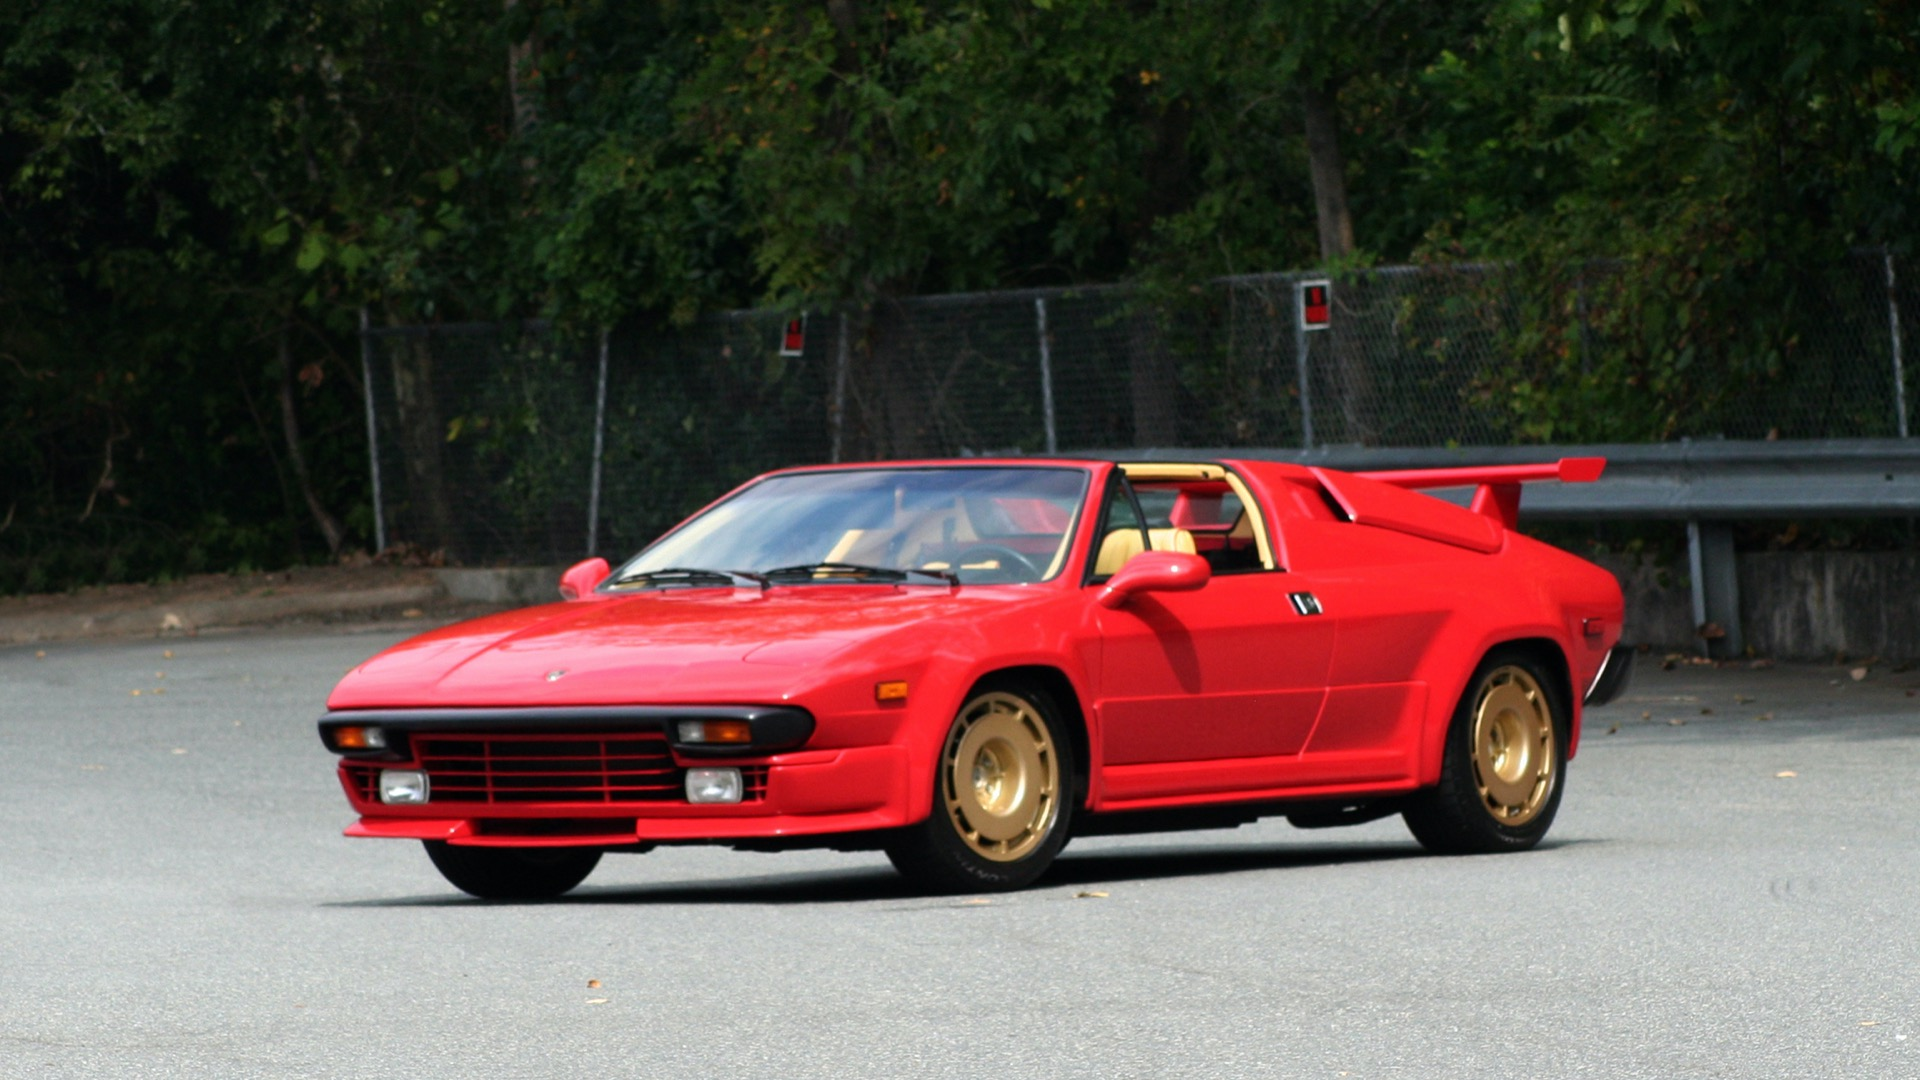 Used 1988 Lamborghini JALPA 3.5 / 5-SPD MANUAL / LOW MILES / EXCELLENT CONDITION for sale Sold at Formula Imports in Charlotte NC 28227 16